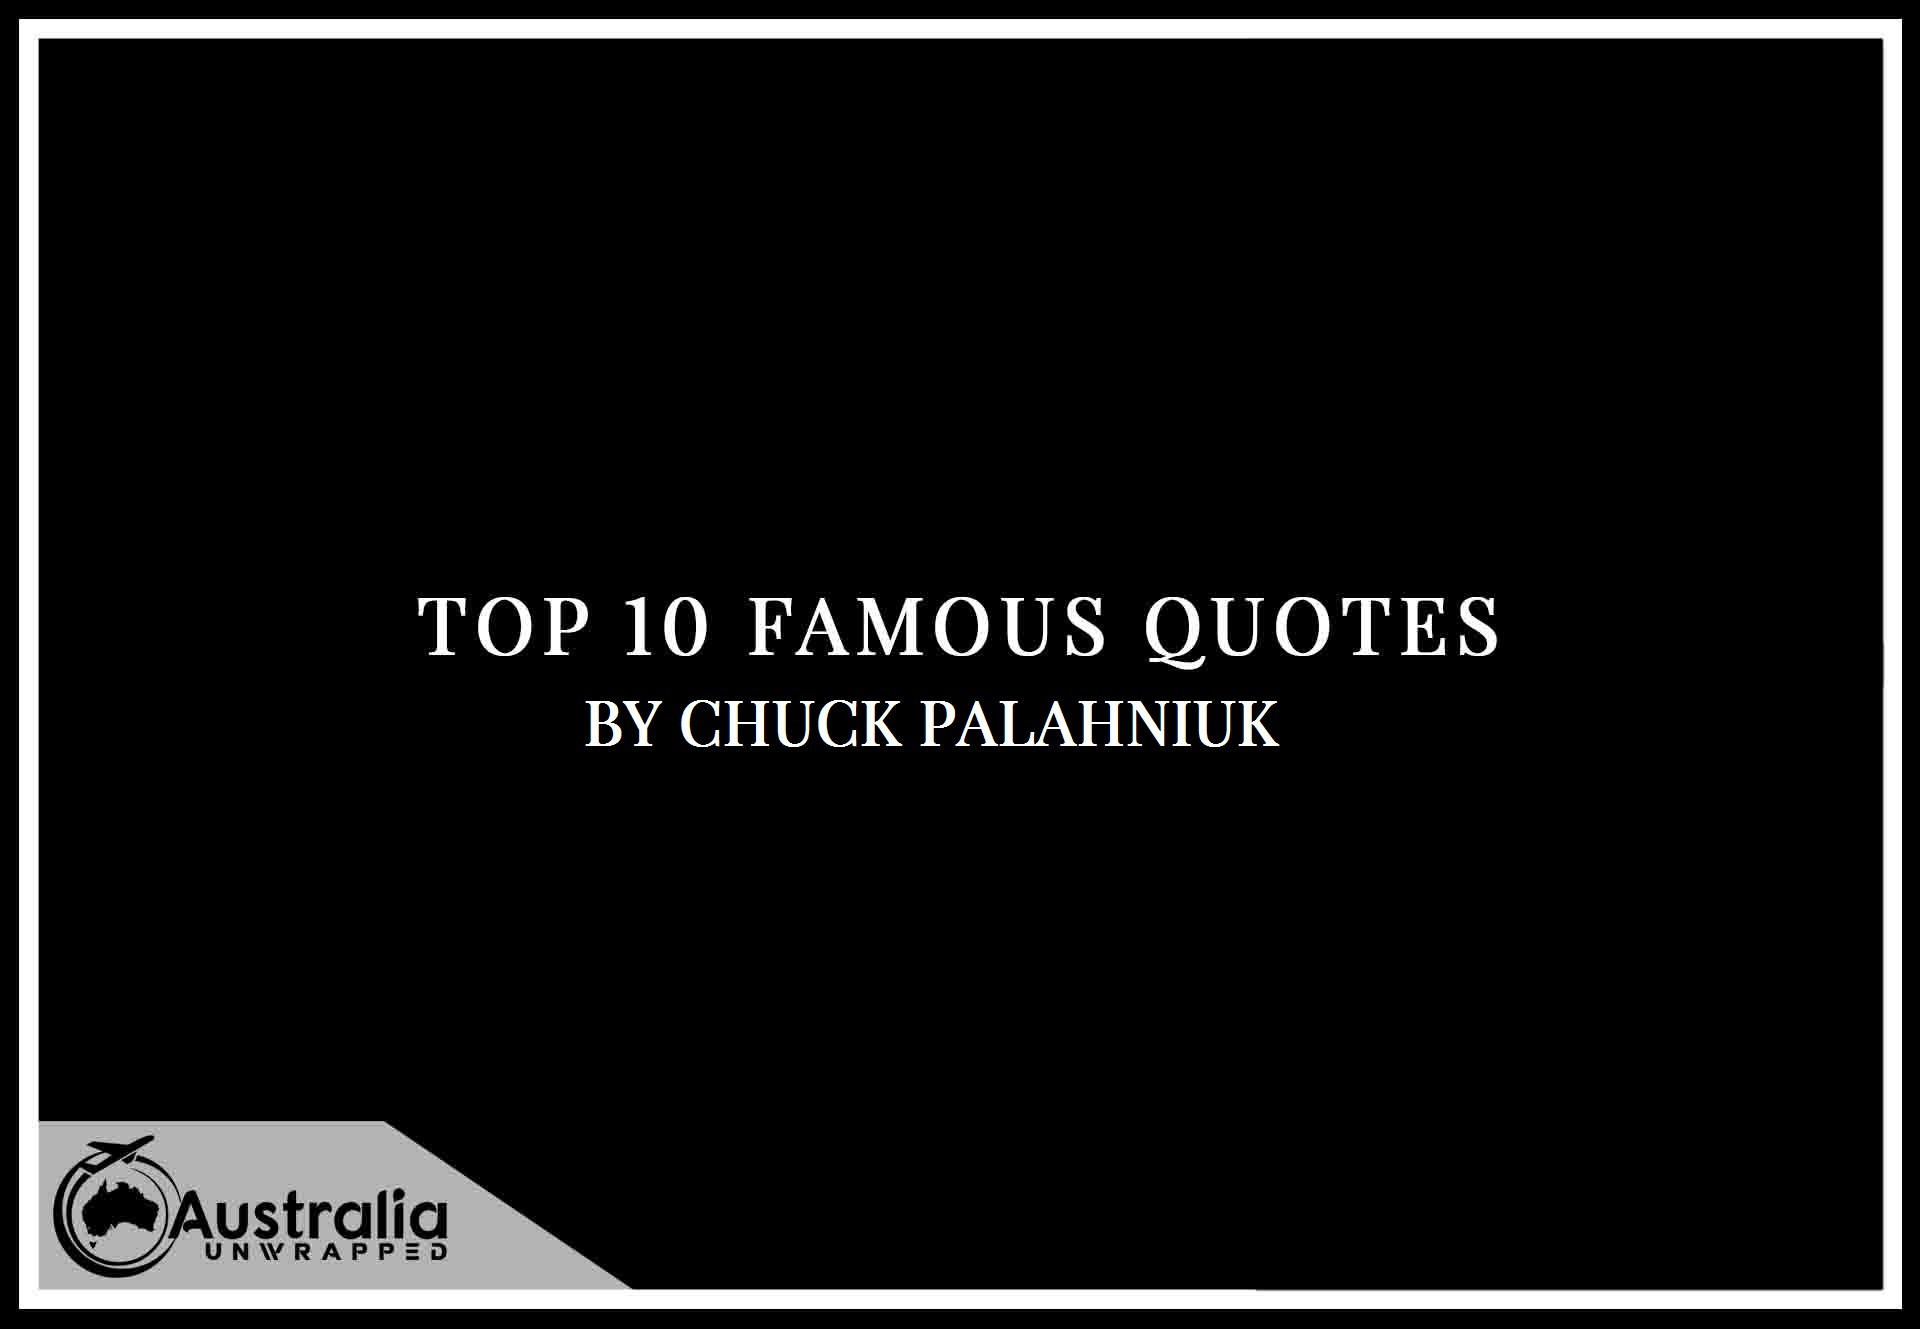 Chuck Palahniuk's Top 10 Popular and Famous Quotes